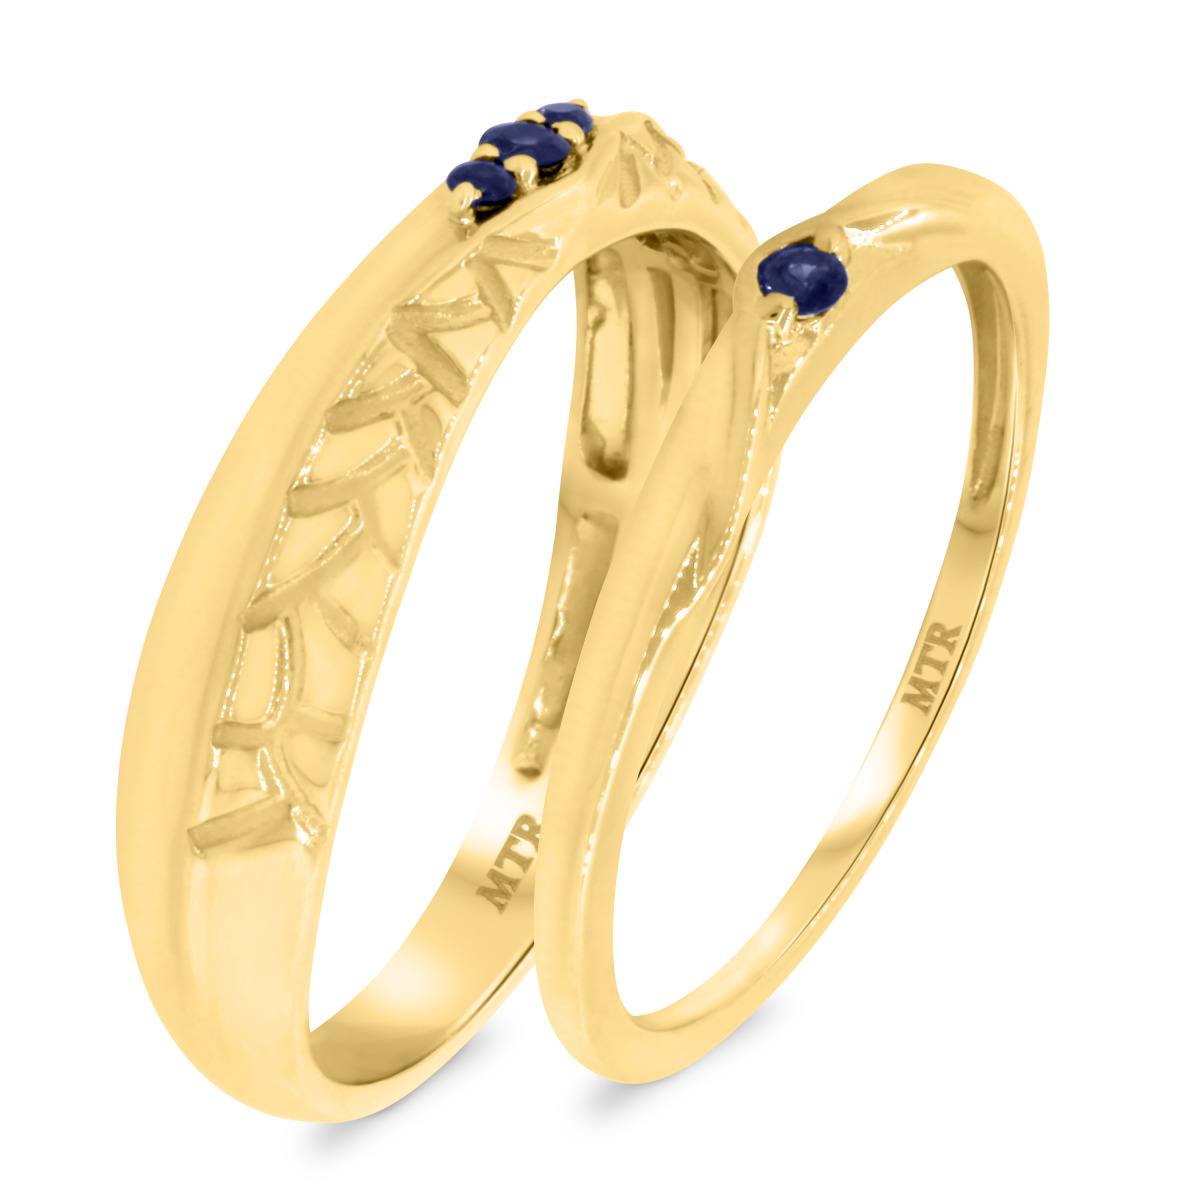 1/6 Carat T.W. Sapphire Matching Wedding Band Set 14K Yellow Gold